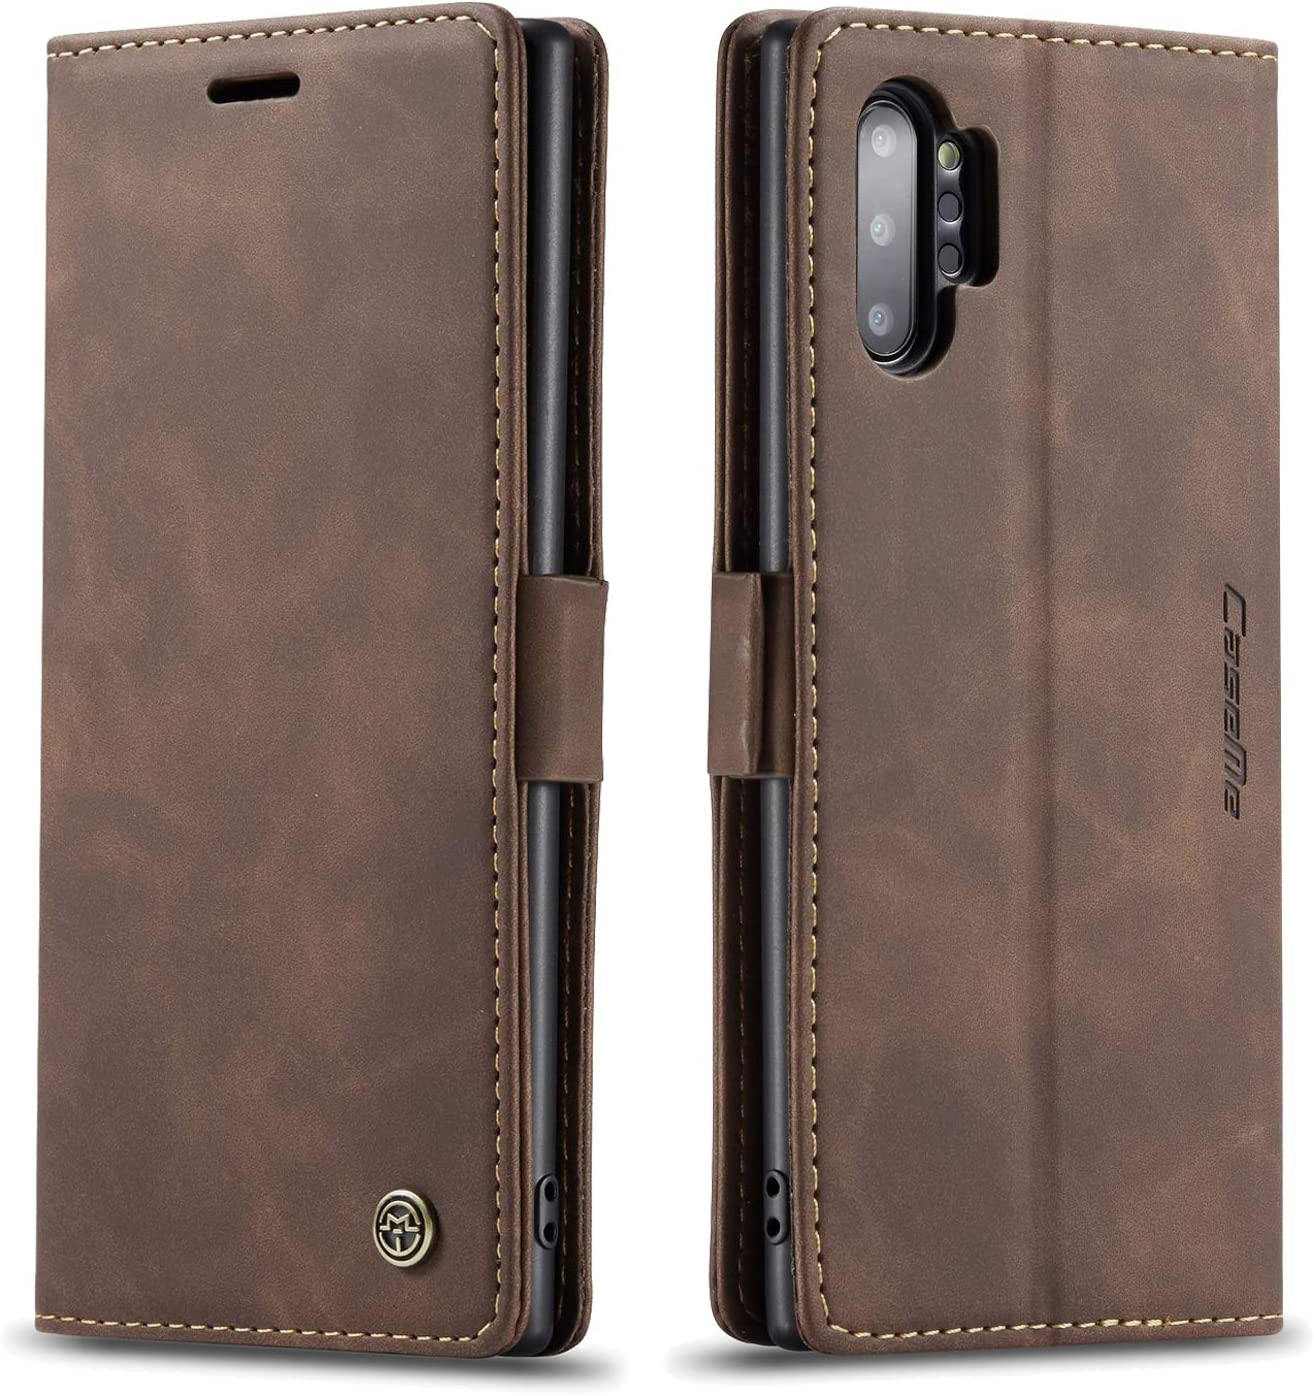 """Samsung Galaxy Note 10+ Plus Wallet Case, Magnetic Stand Flip Protective Cover PU Leather Flip Case with ID & Credit Card Slots Cash Pockets for Samsung Galaxy Note 10 Plus 6.8"""" (Coffee)"""